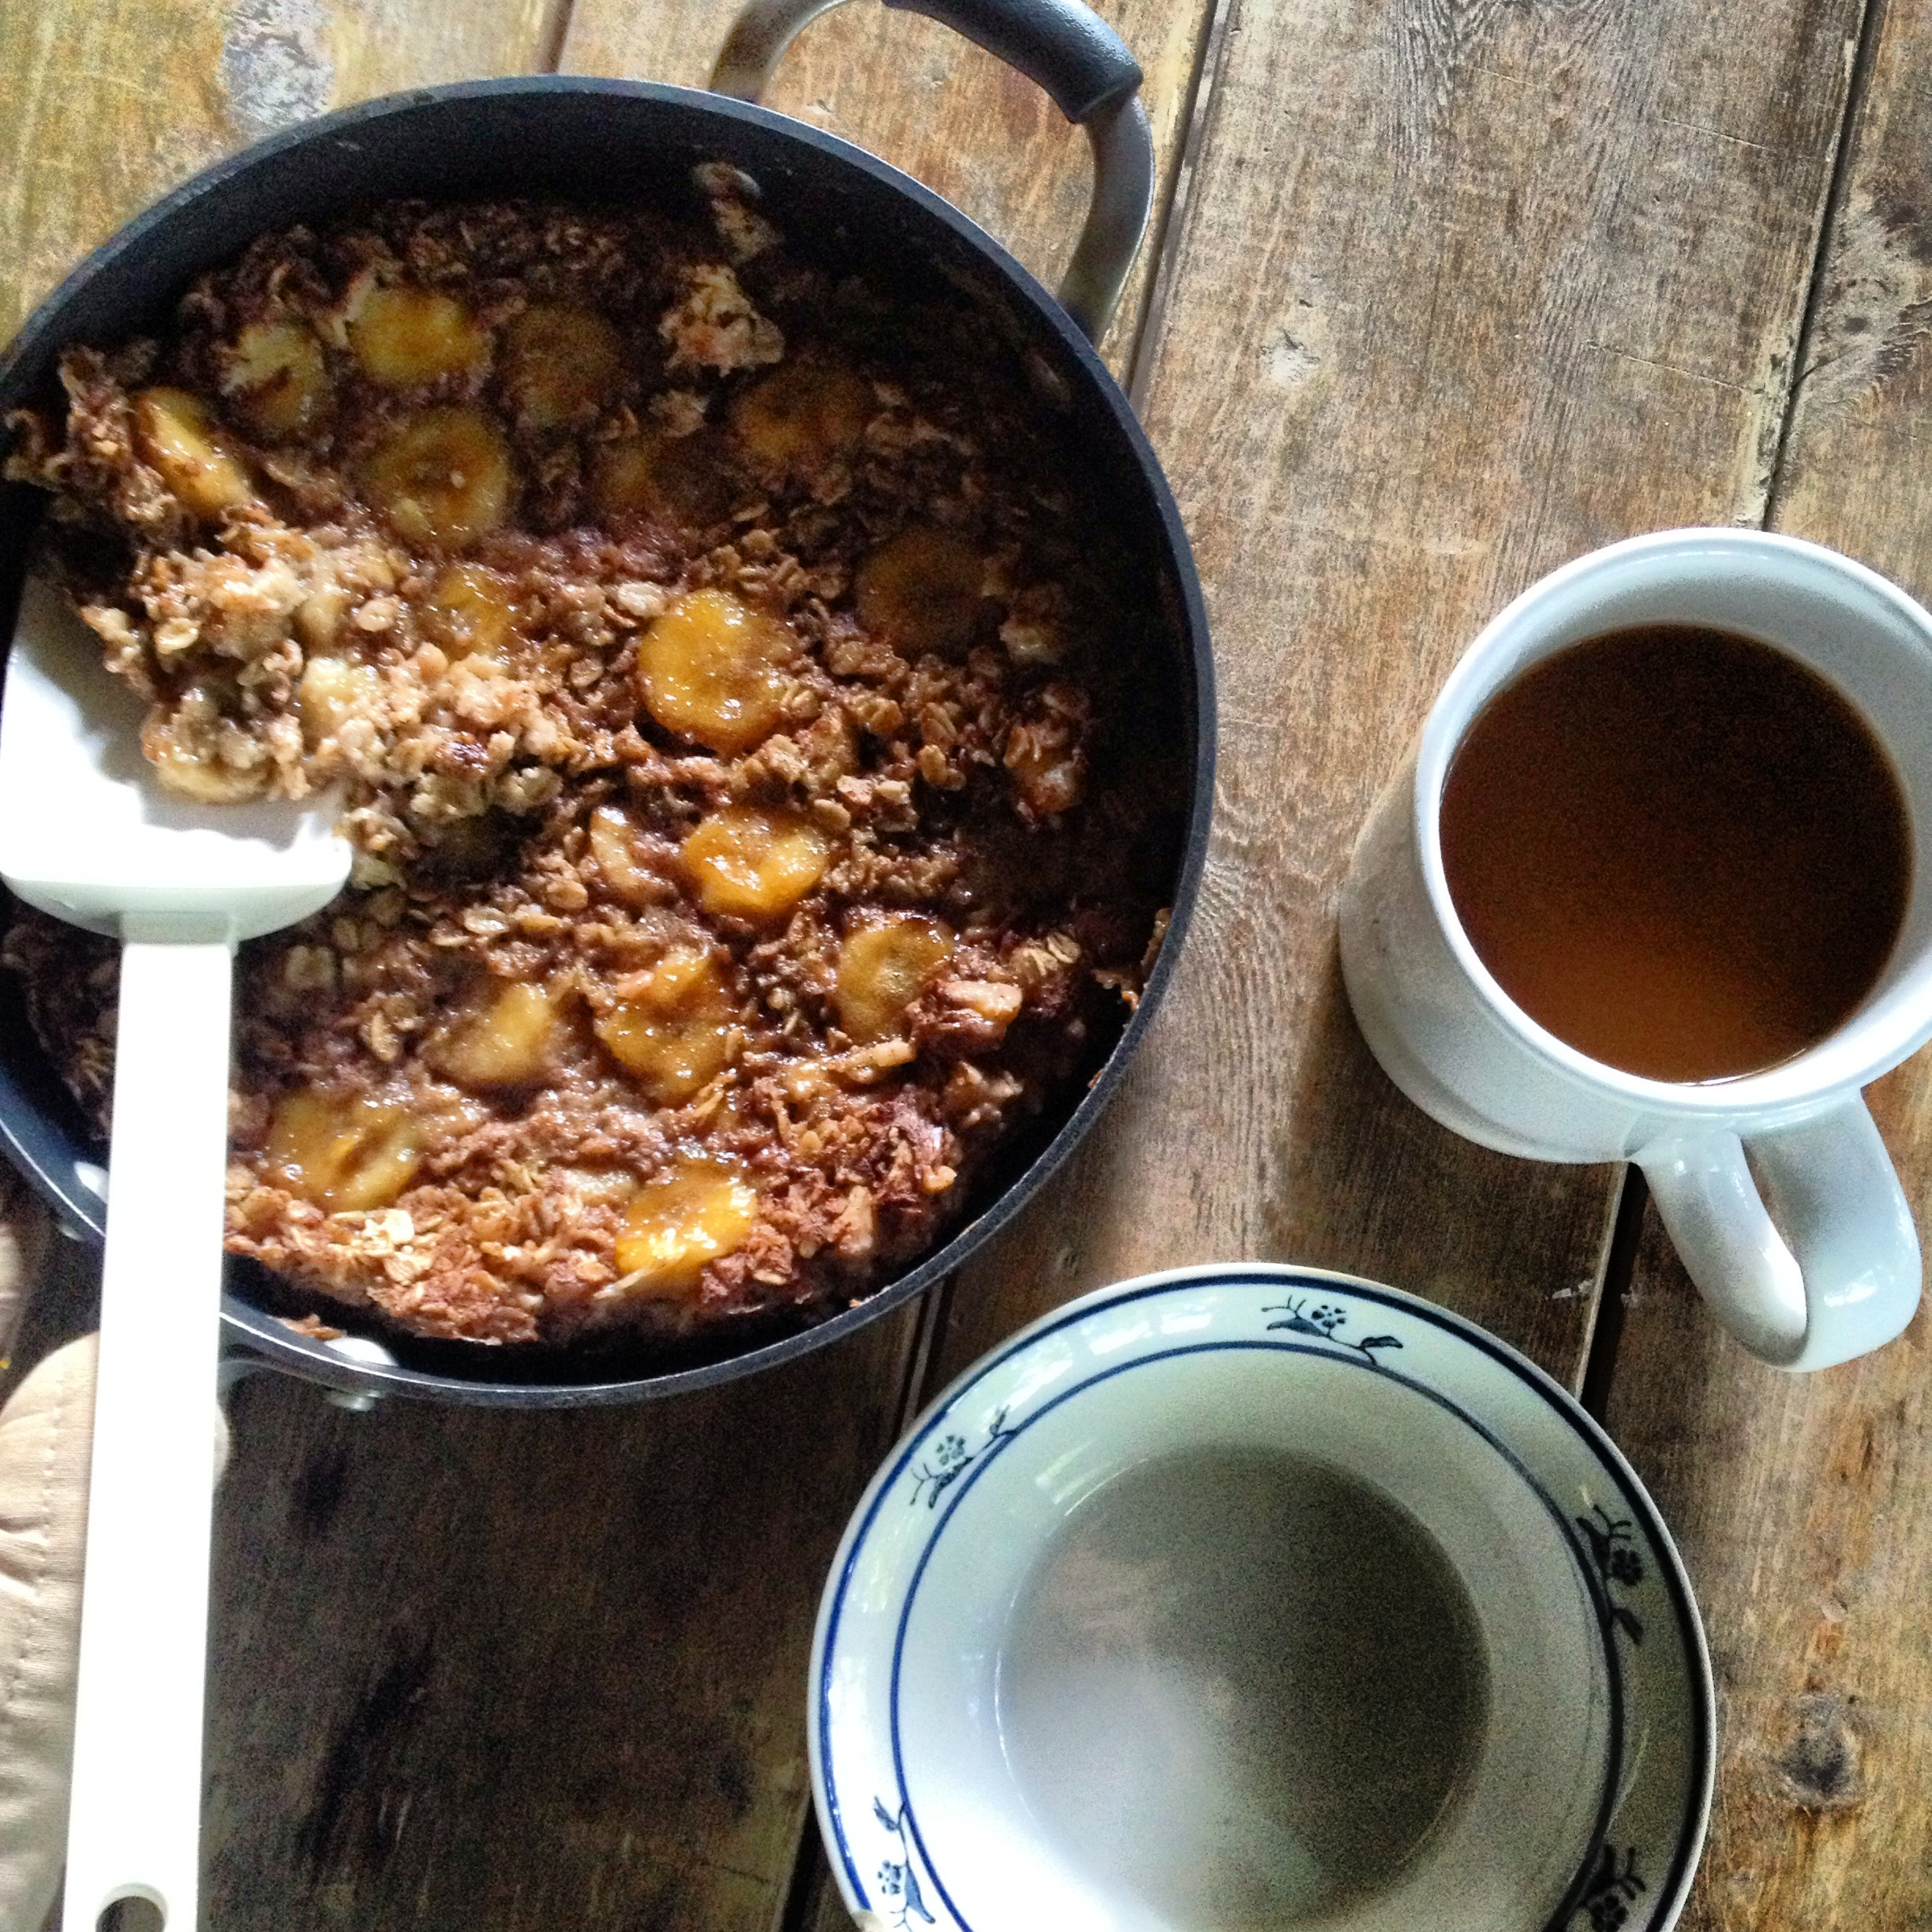 ... in the Kitchen — bananas foster baked oatmeal, and a perfect weekend